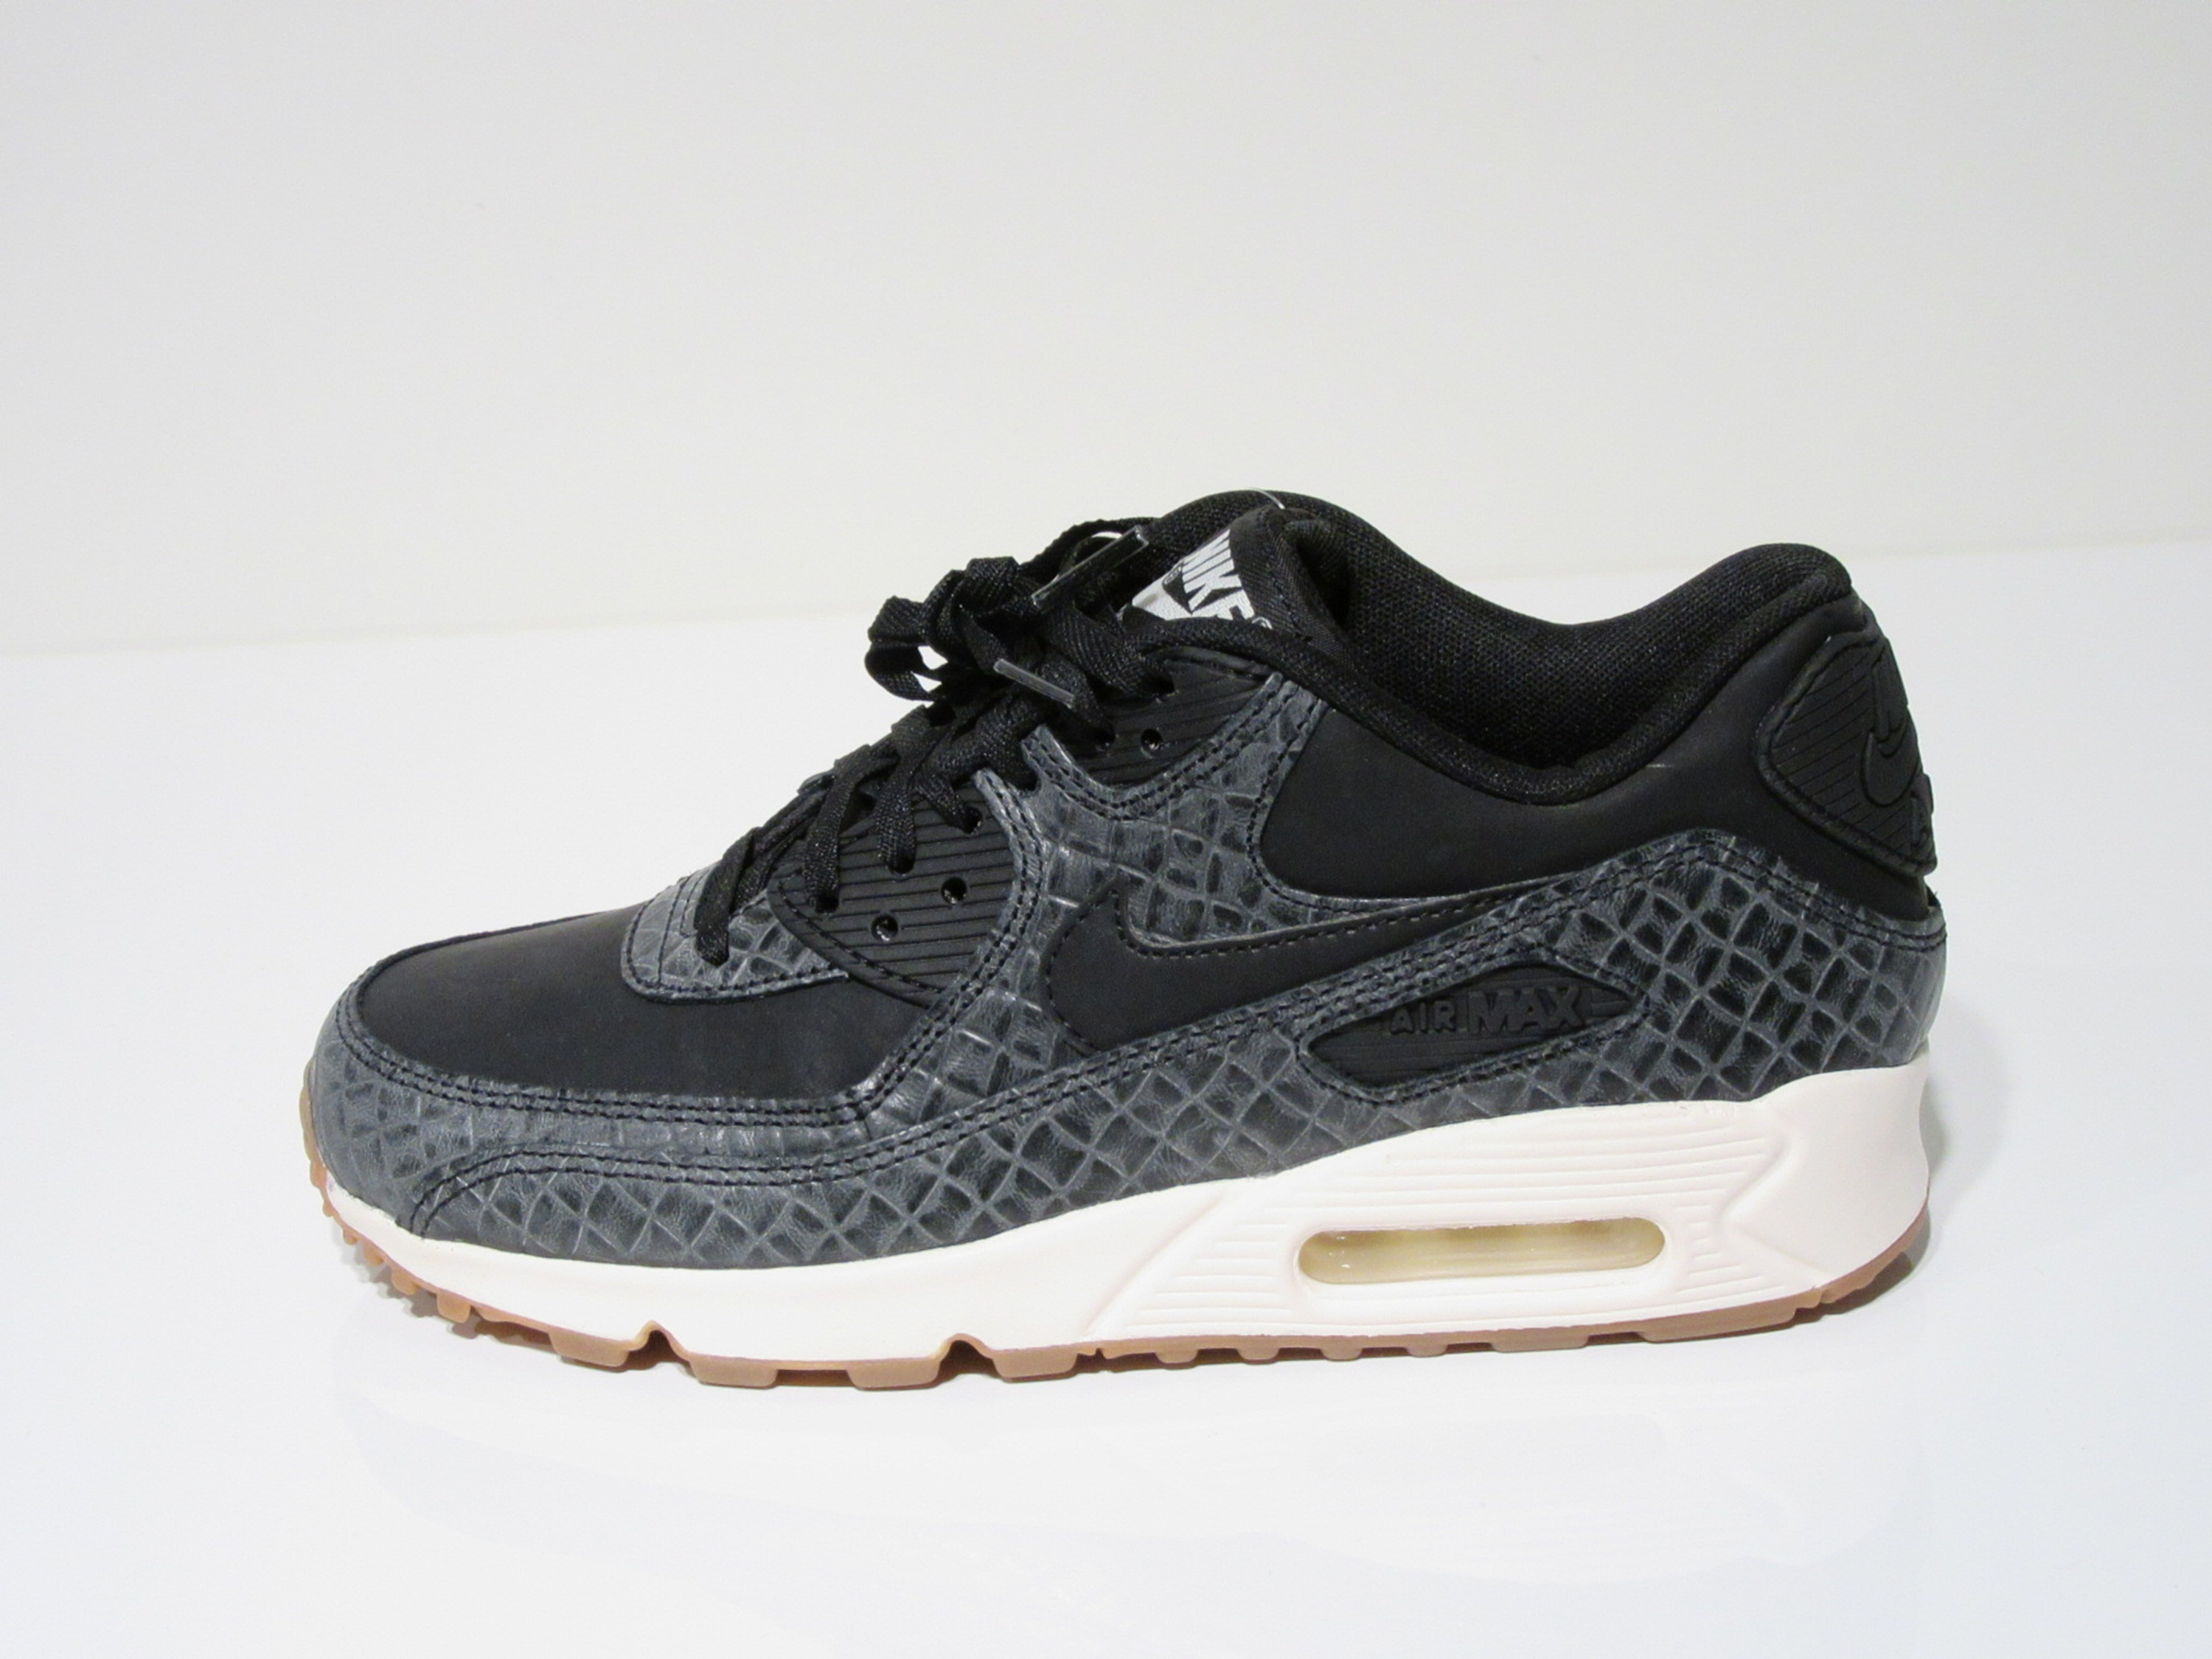 wholesale dealer 5845b 8e2d2 ... best price nike air max 90 premium in schwarz grau für damen 94cd0 52754